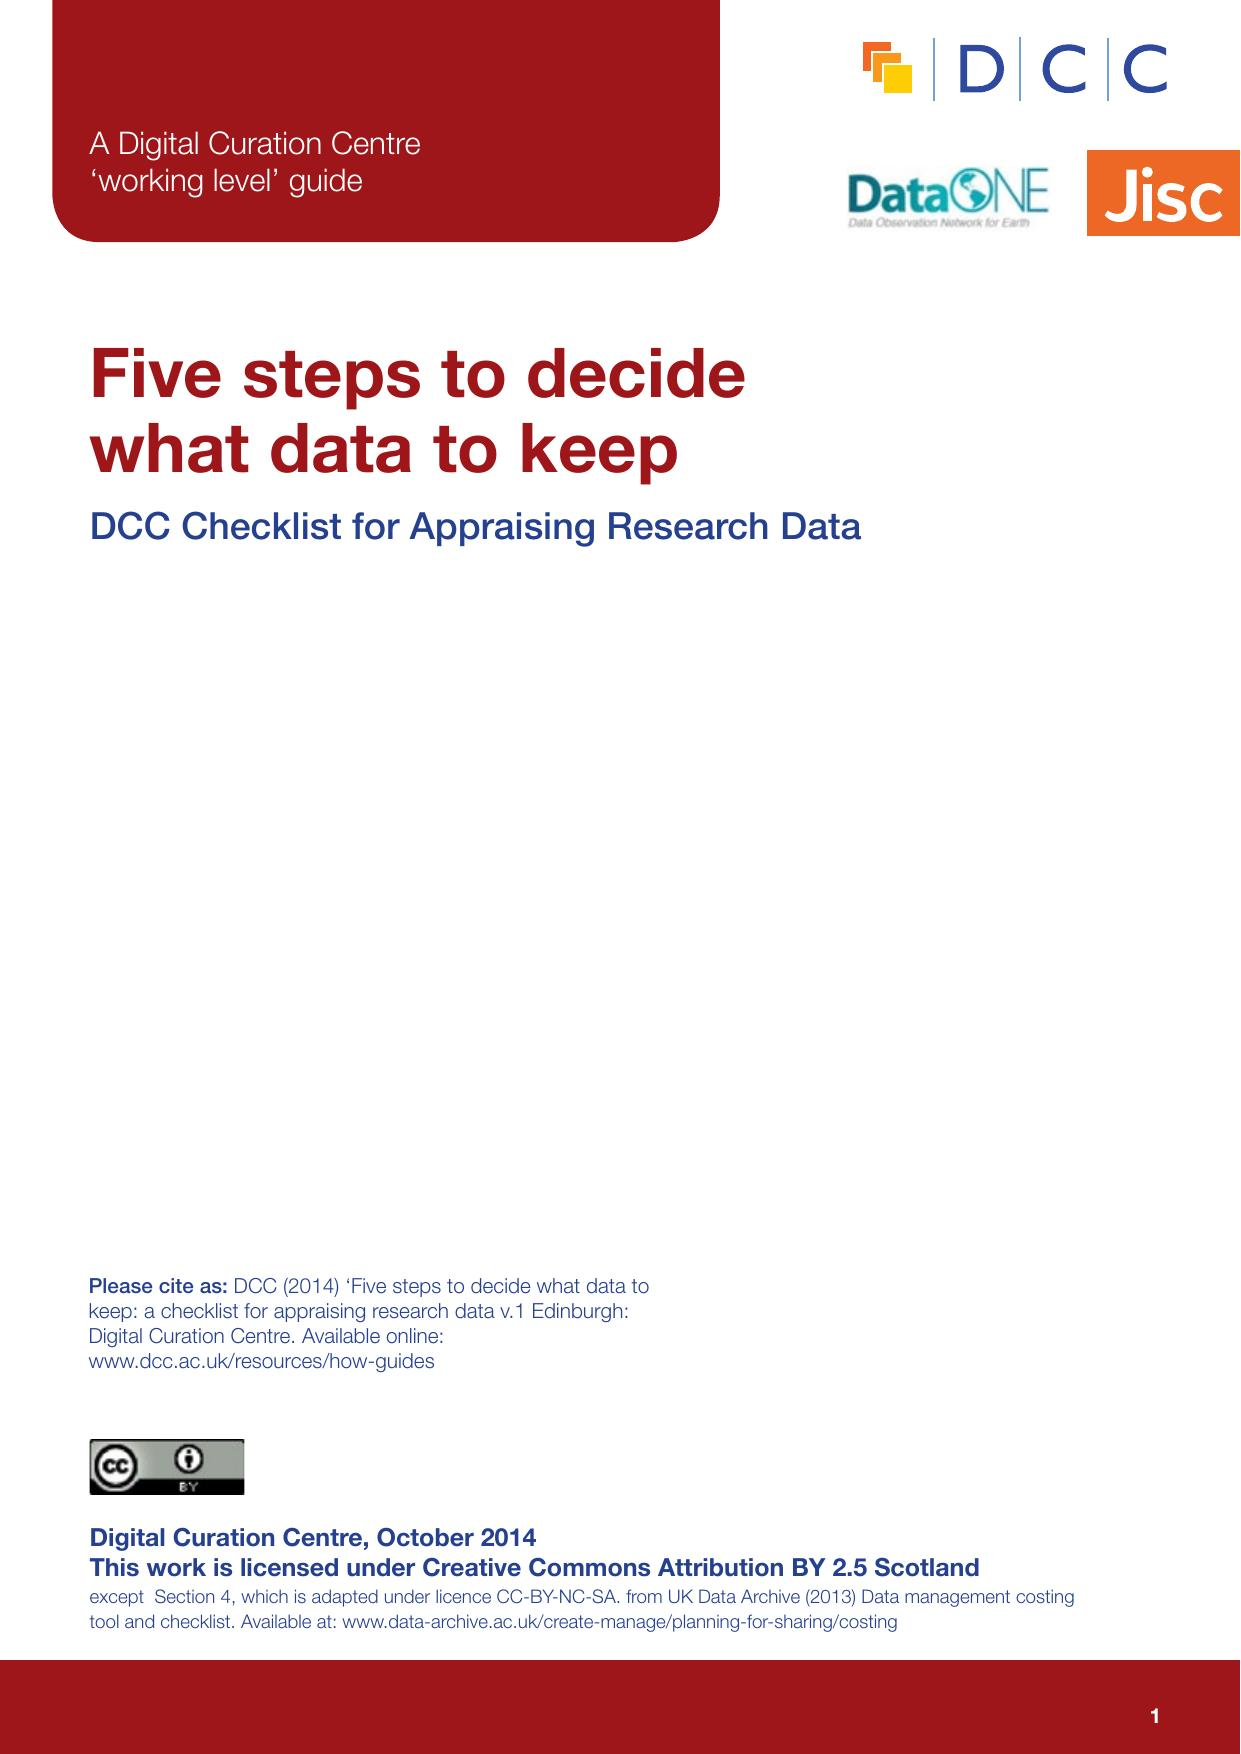 Five Steps to decide what data to keep - DCC Checklist for Appraising Research Data